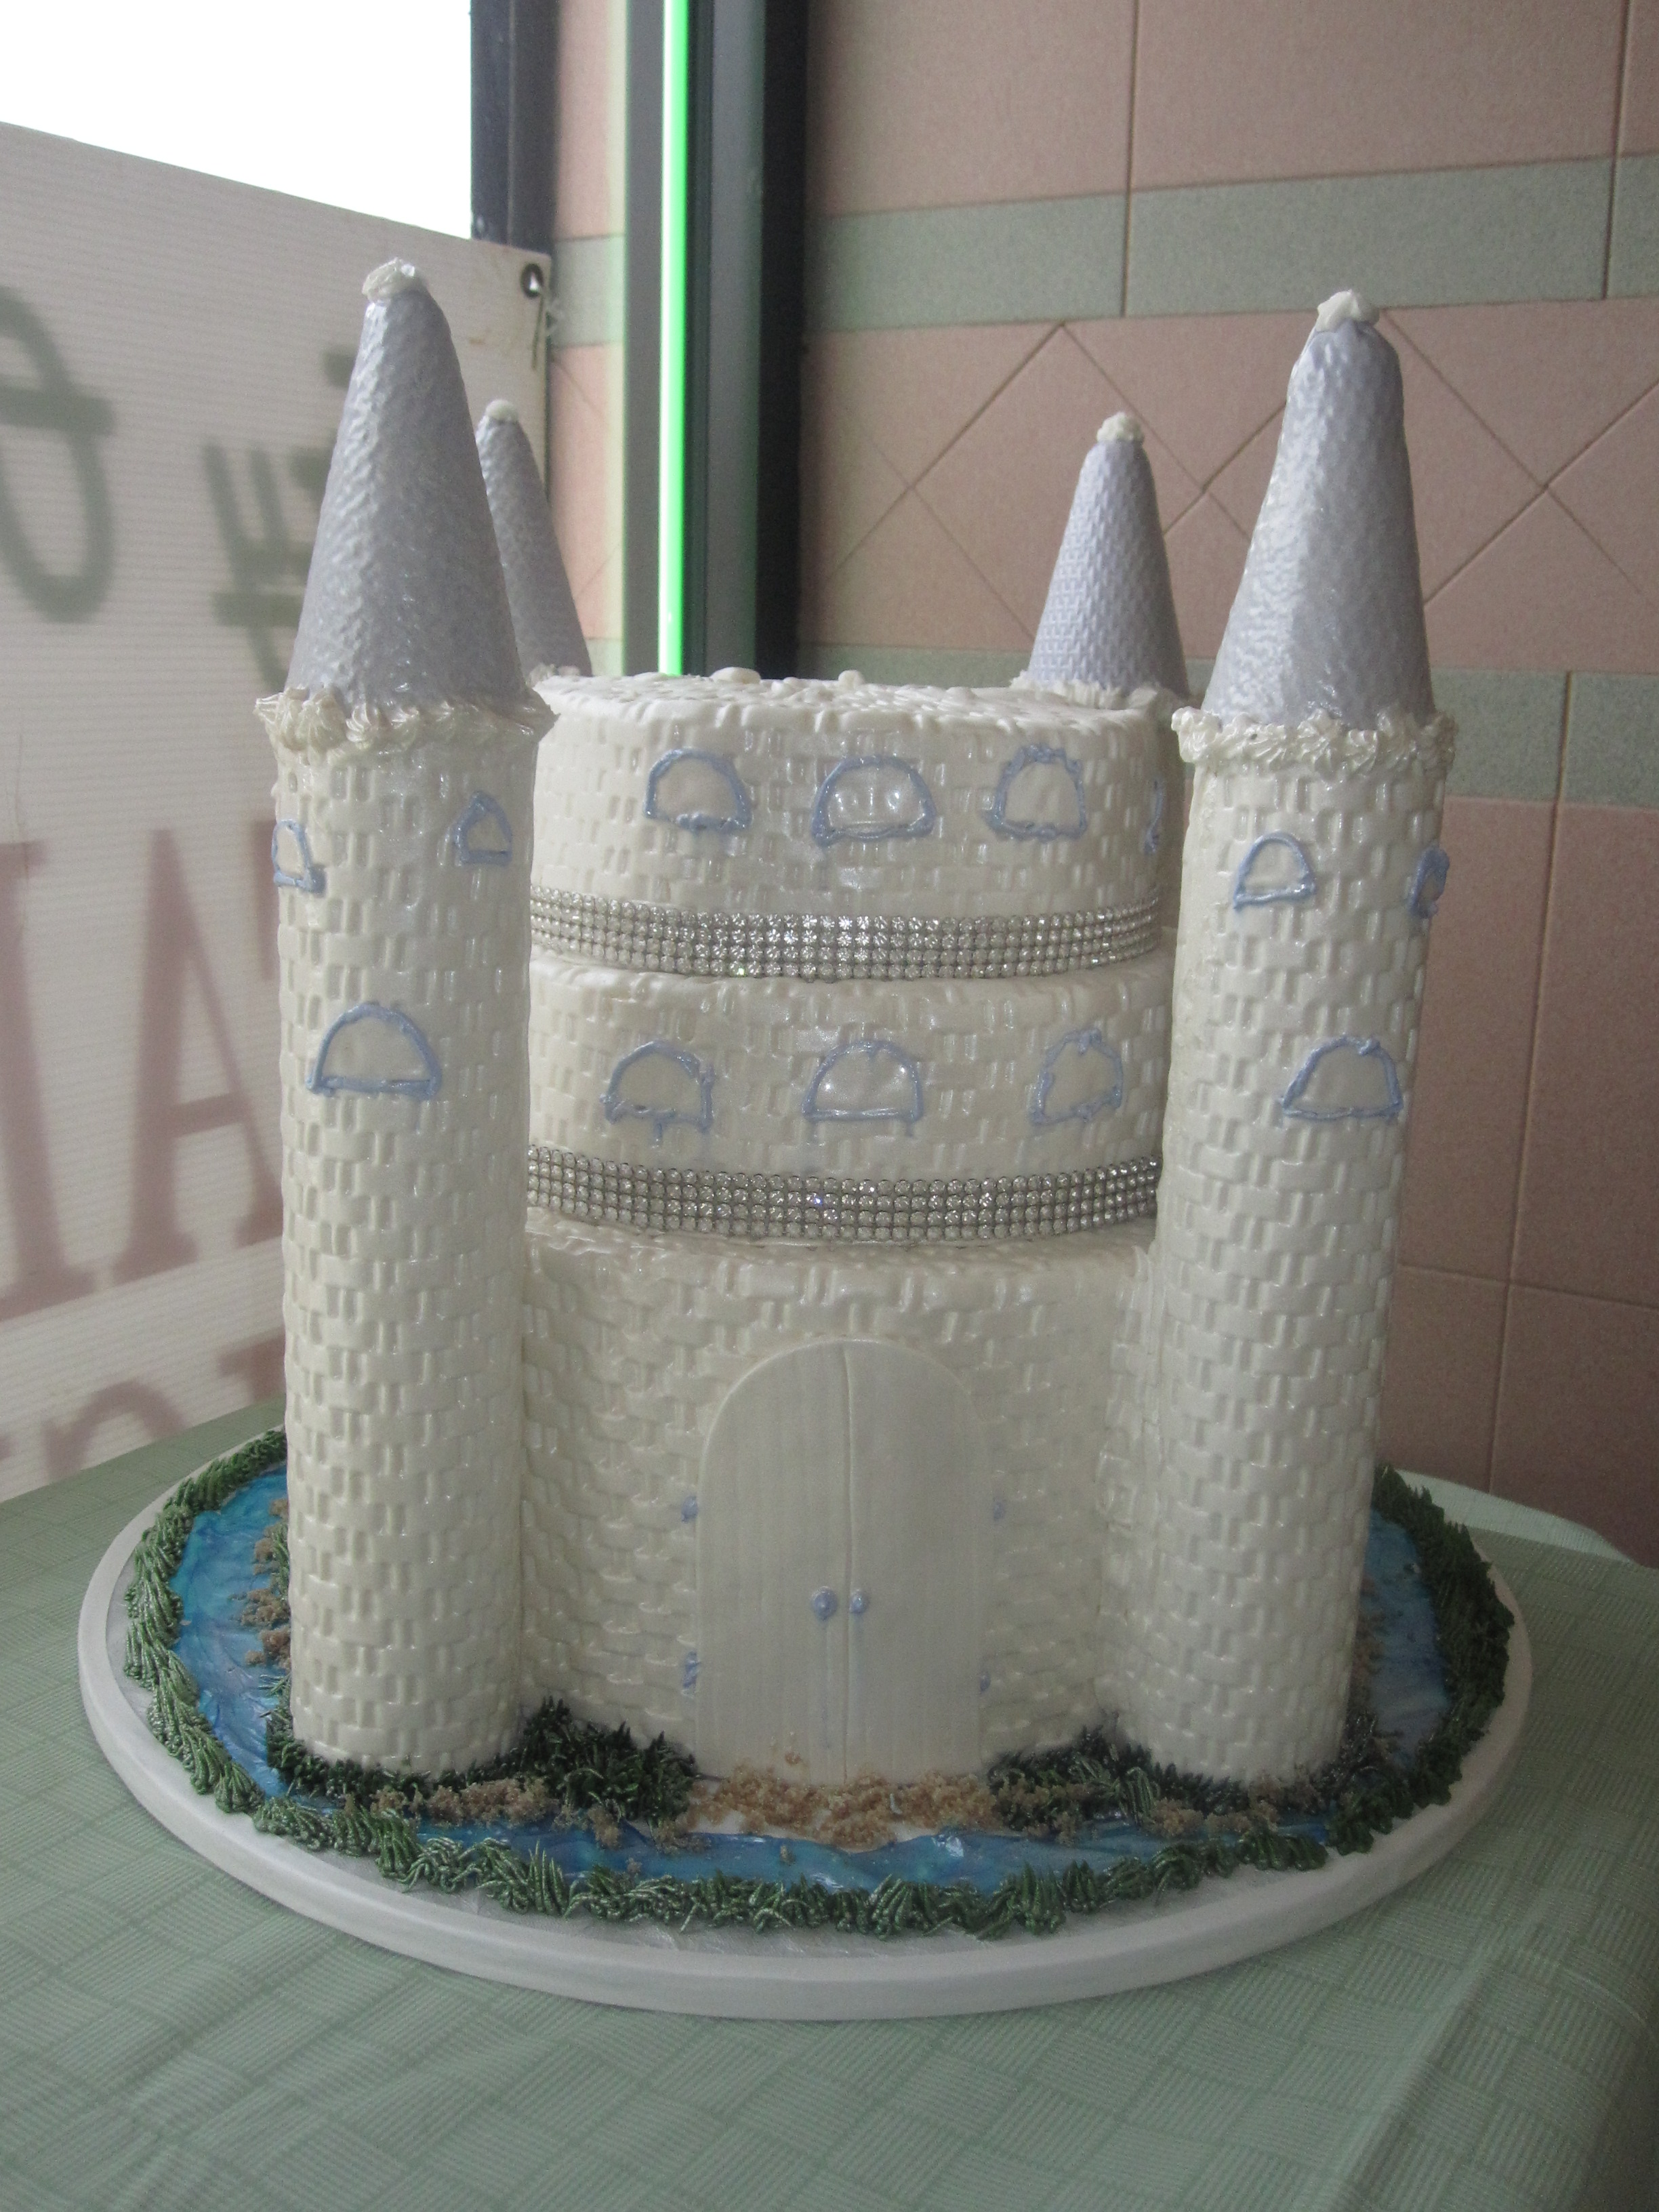 Castlecake.TallTowers.RFPatterened